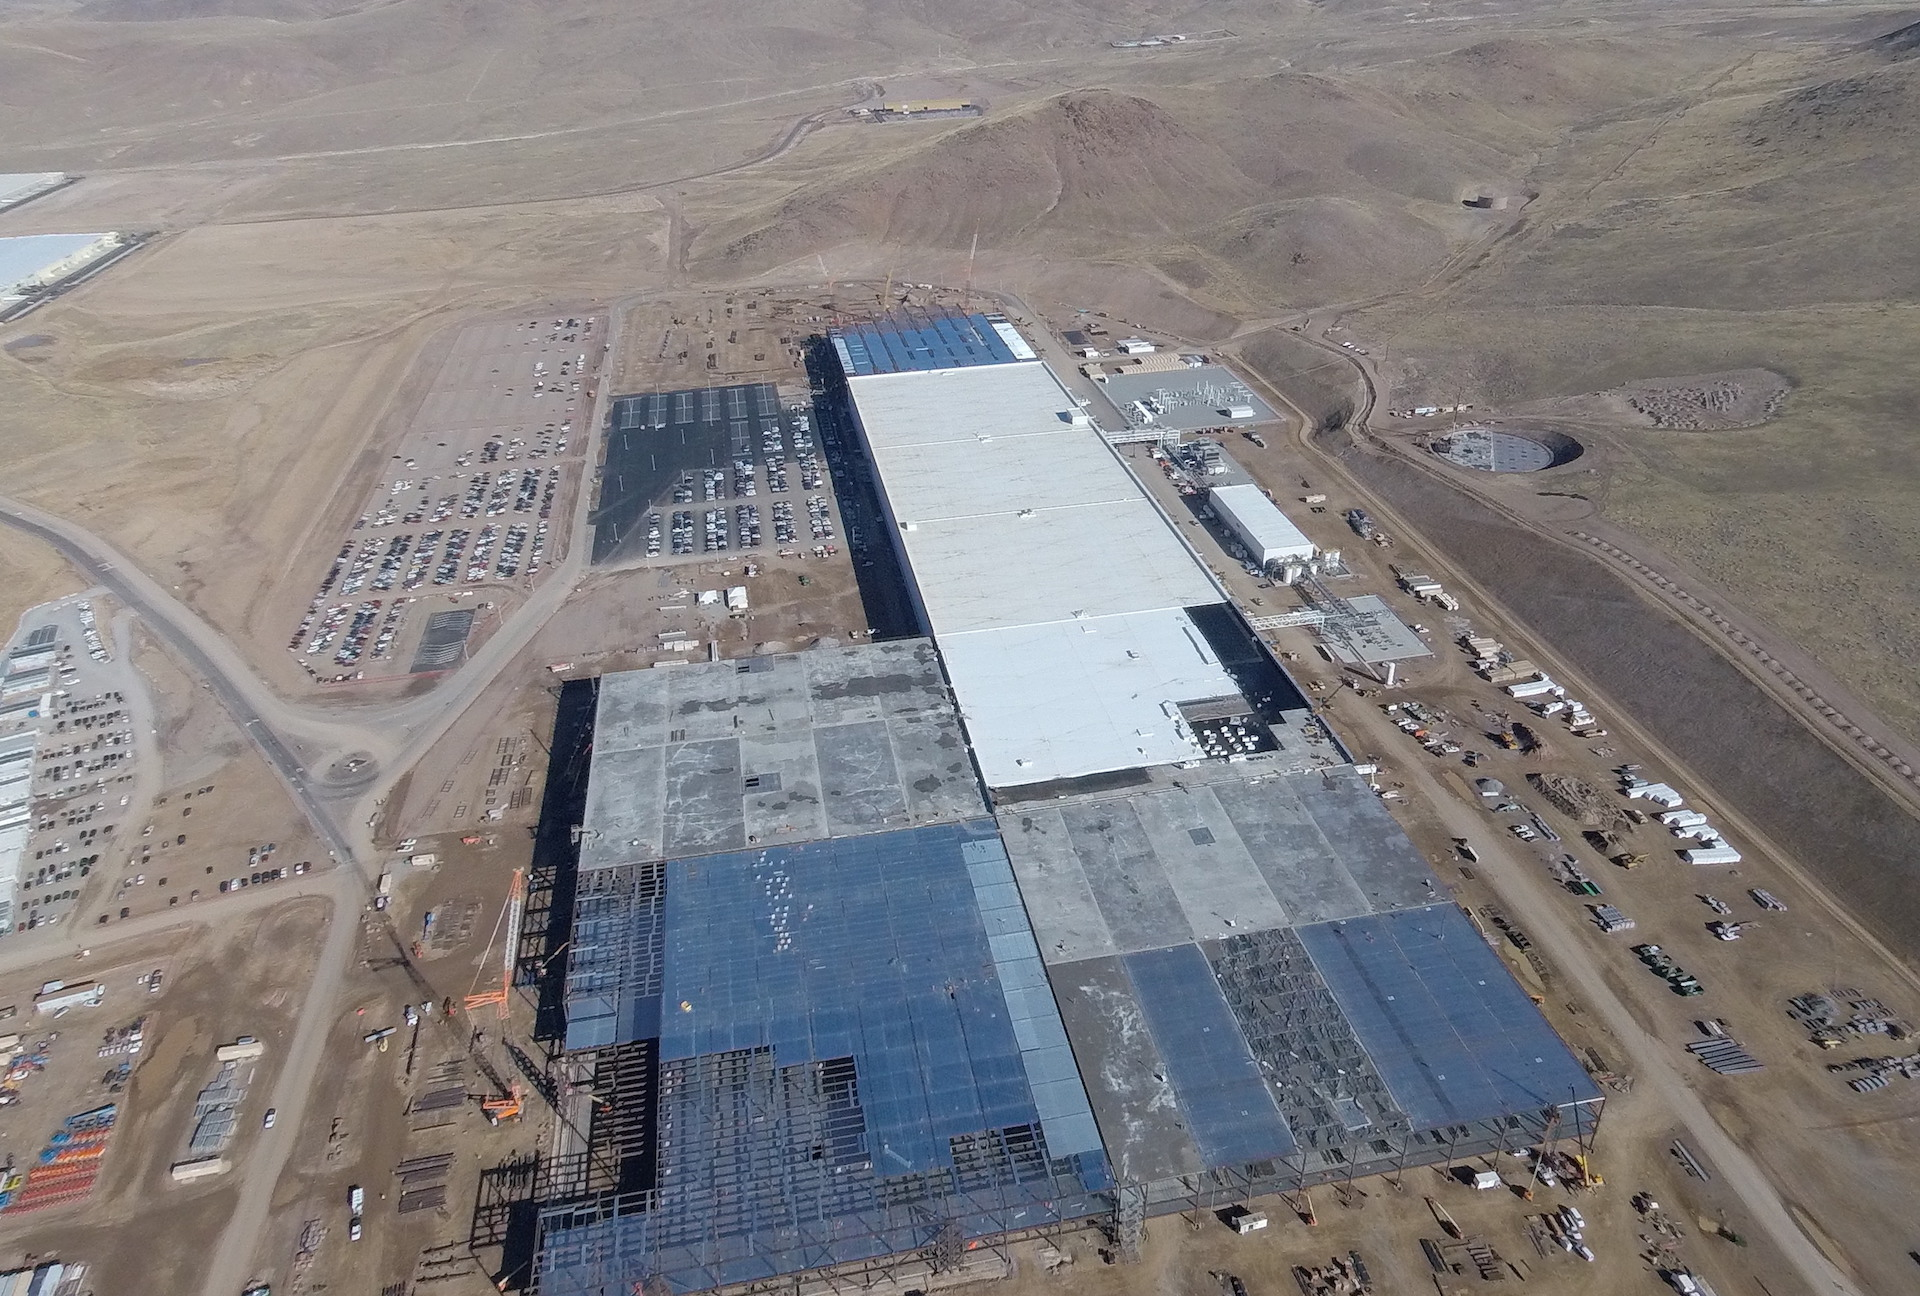 tesla-gigafactory-aerial-nov-2-2016-south-end